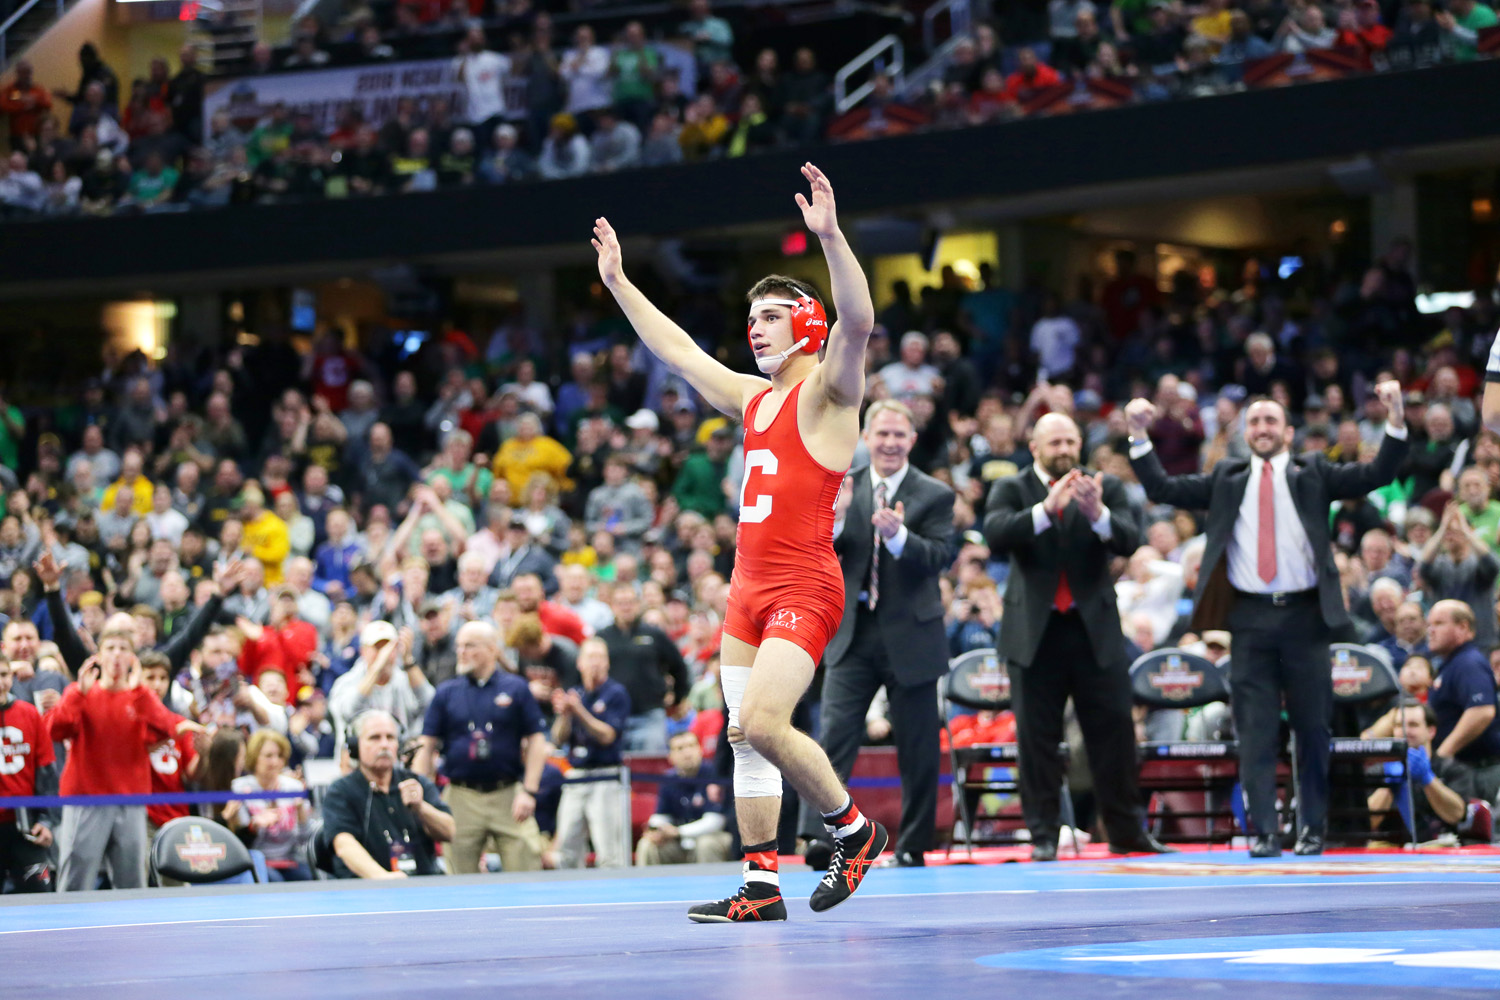 Hilton High School graduate and Cornell wrestler Yianni Diakomihalis reacts after defeating Wyoming Cowboys wrestler Bryce Meredith during the NCAA Division I Wrestling Championships at Quicken Loans Arena in Cleveland. Provided photo